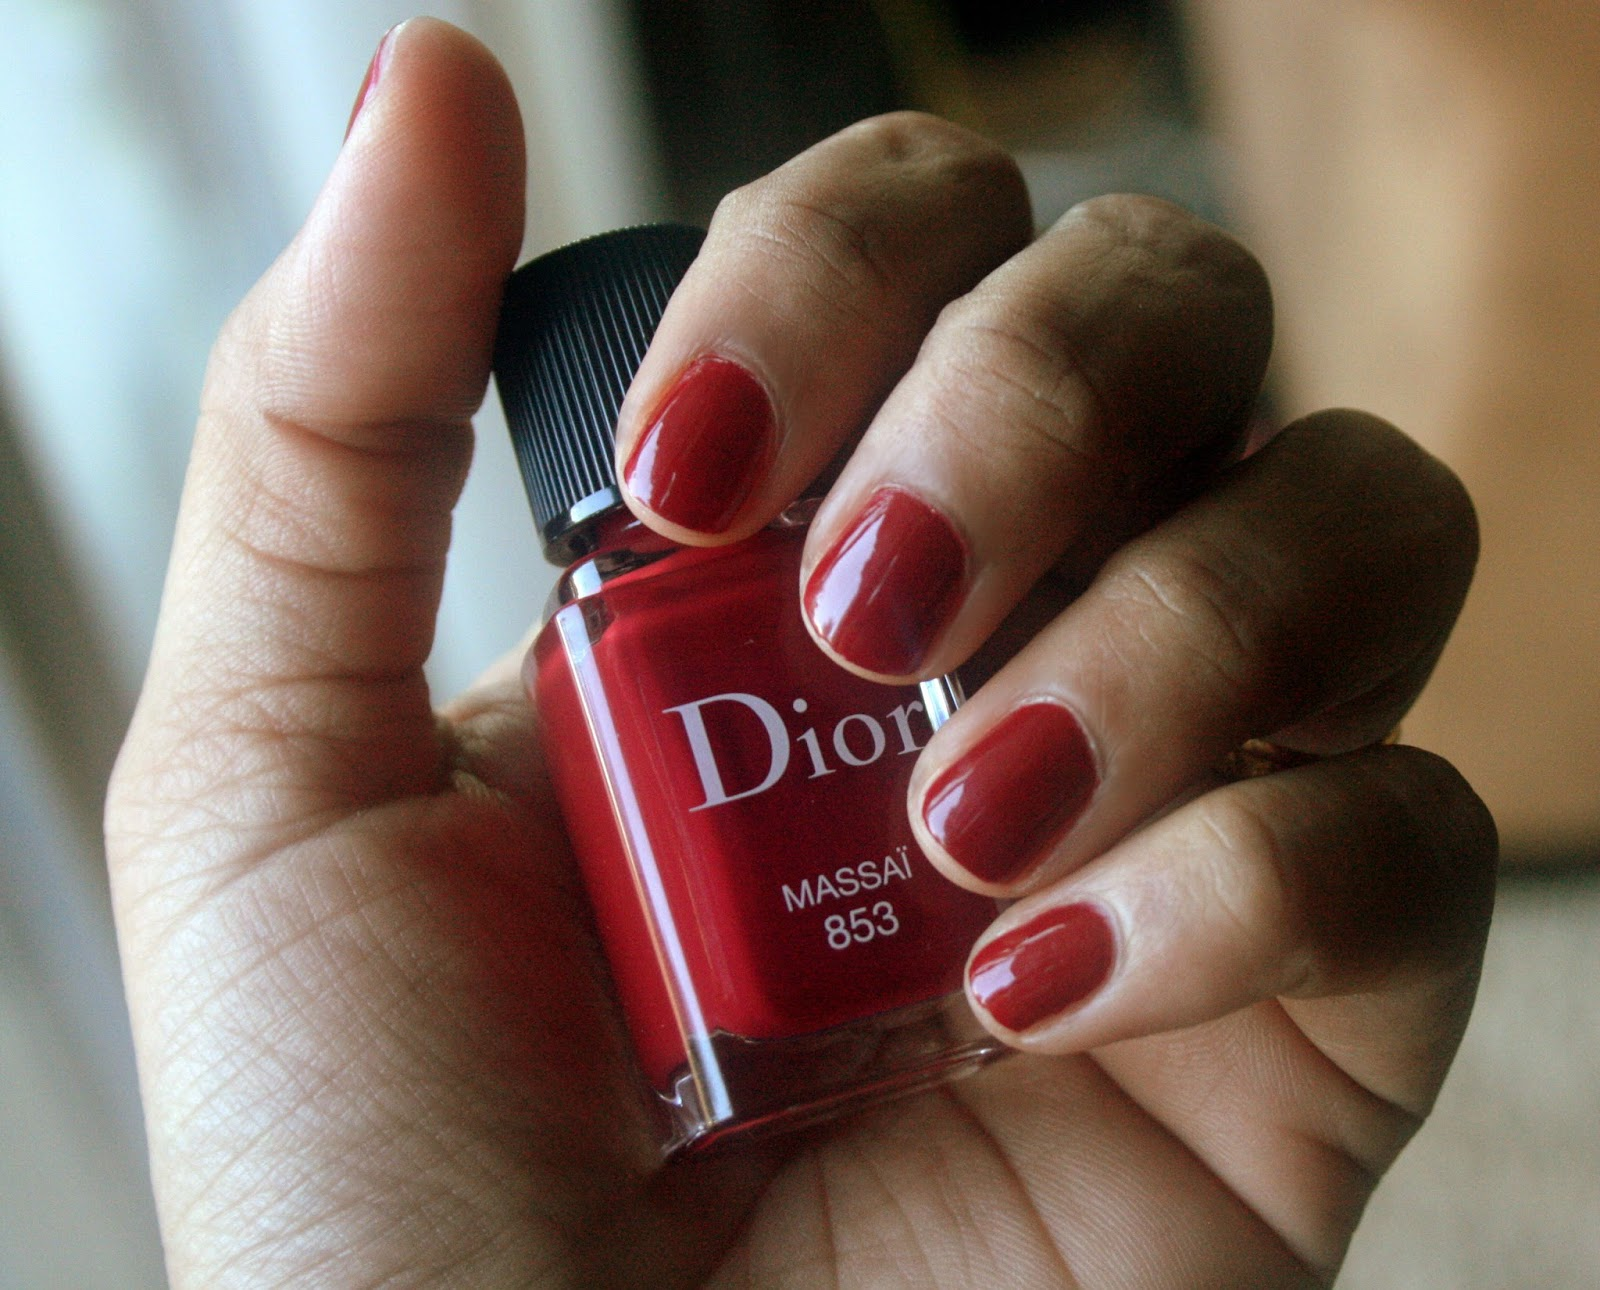 Dior Vernis Massai 853 Swatch NOTD Nail Polish Application